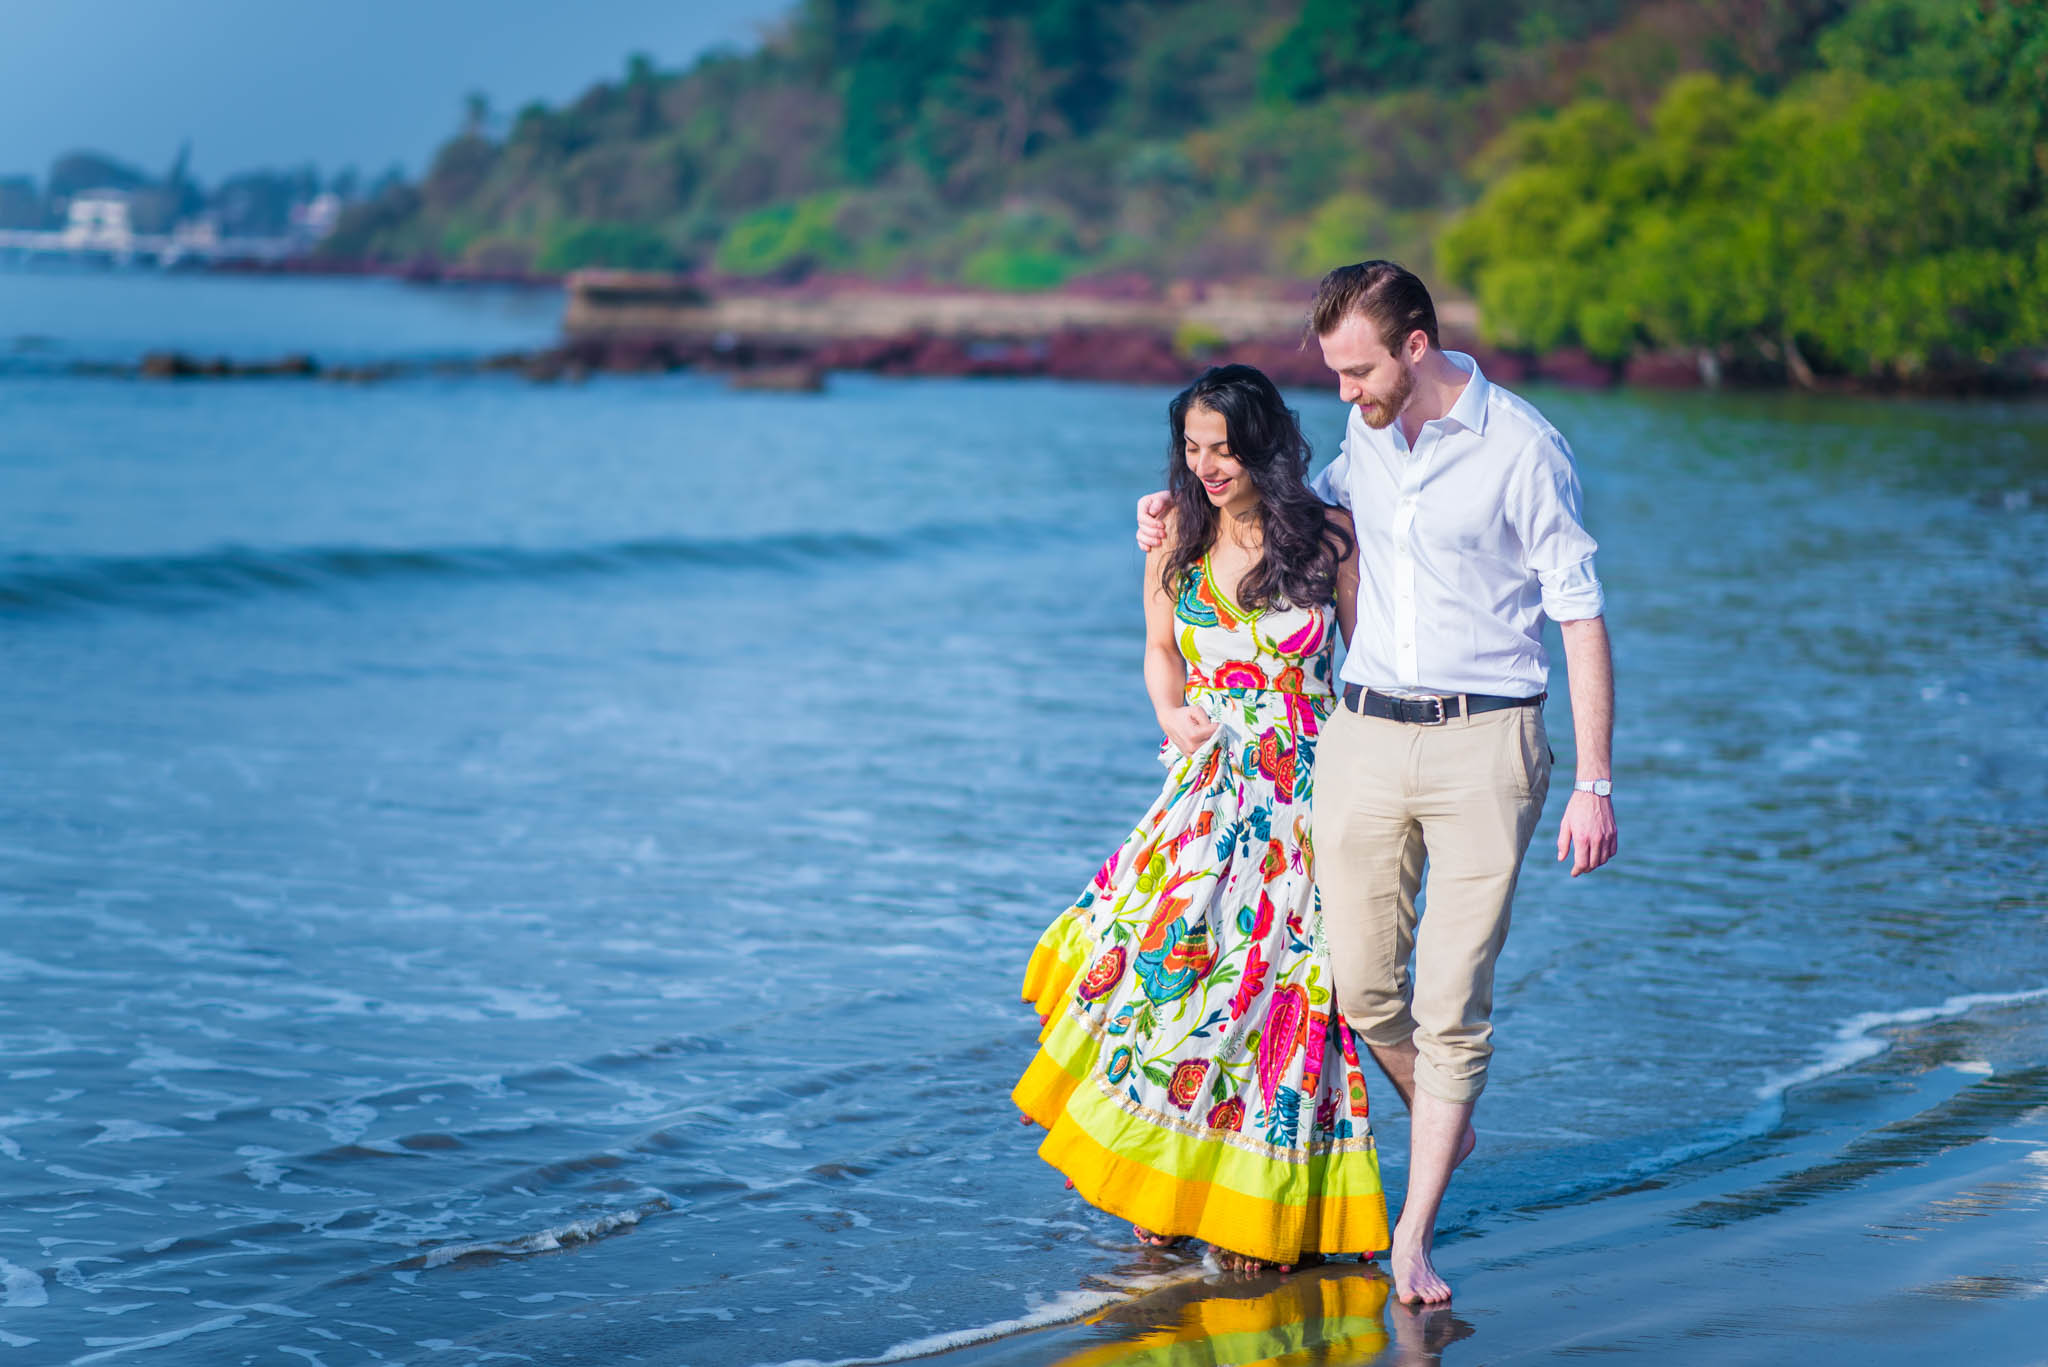 Big-Fat-Indian-Wedding-Destination-Goa-Cidade-de-goa-whatknot-candid-photography-25